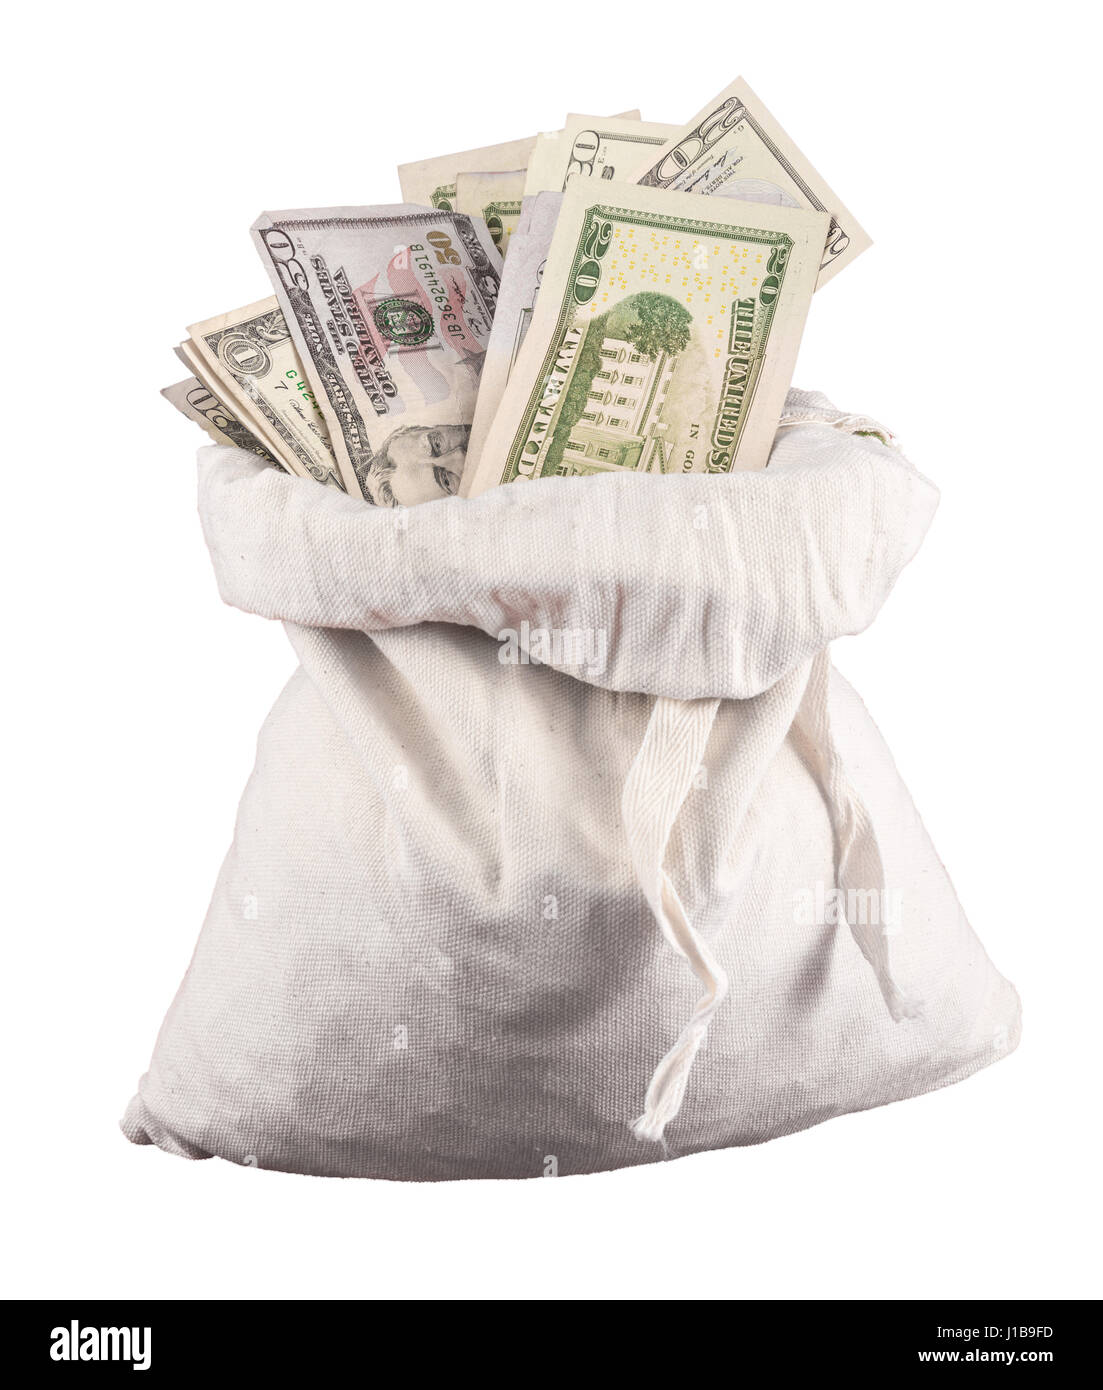 Sack of money - US dollar bills currency or US dollar bank notes in a money bag on a white background isolated - Stock Image